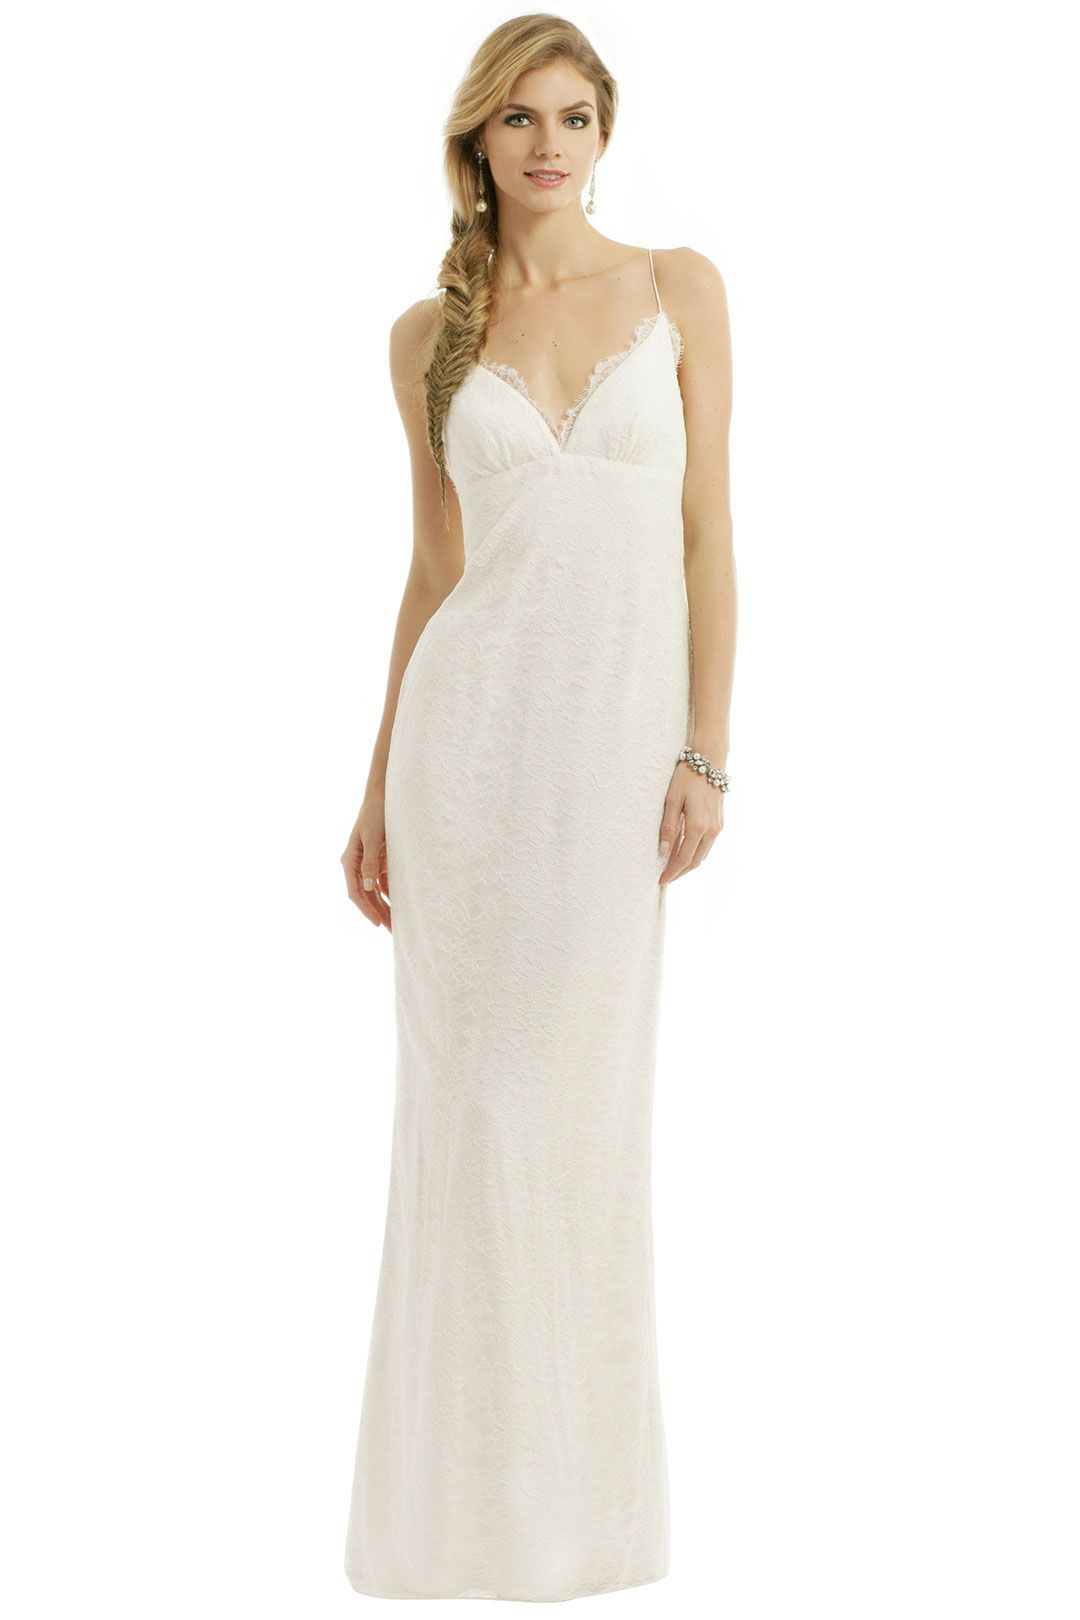 Nicole Miller Lace Fantasy Gown rent the runway Fantasy